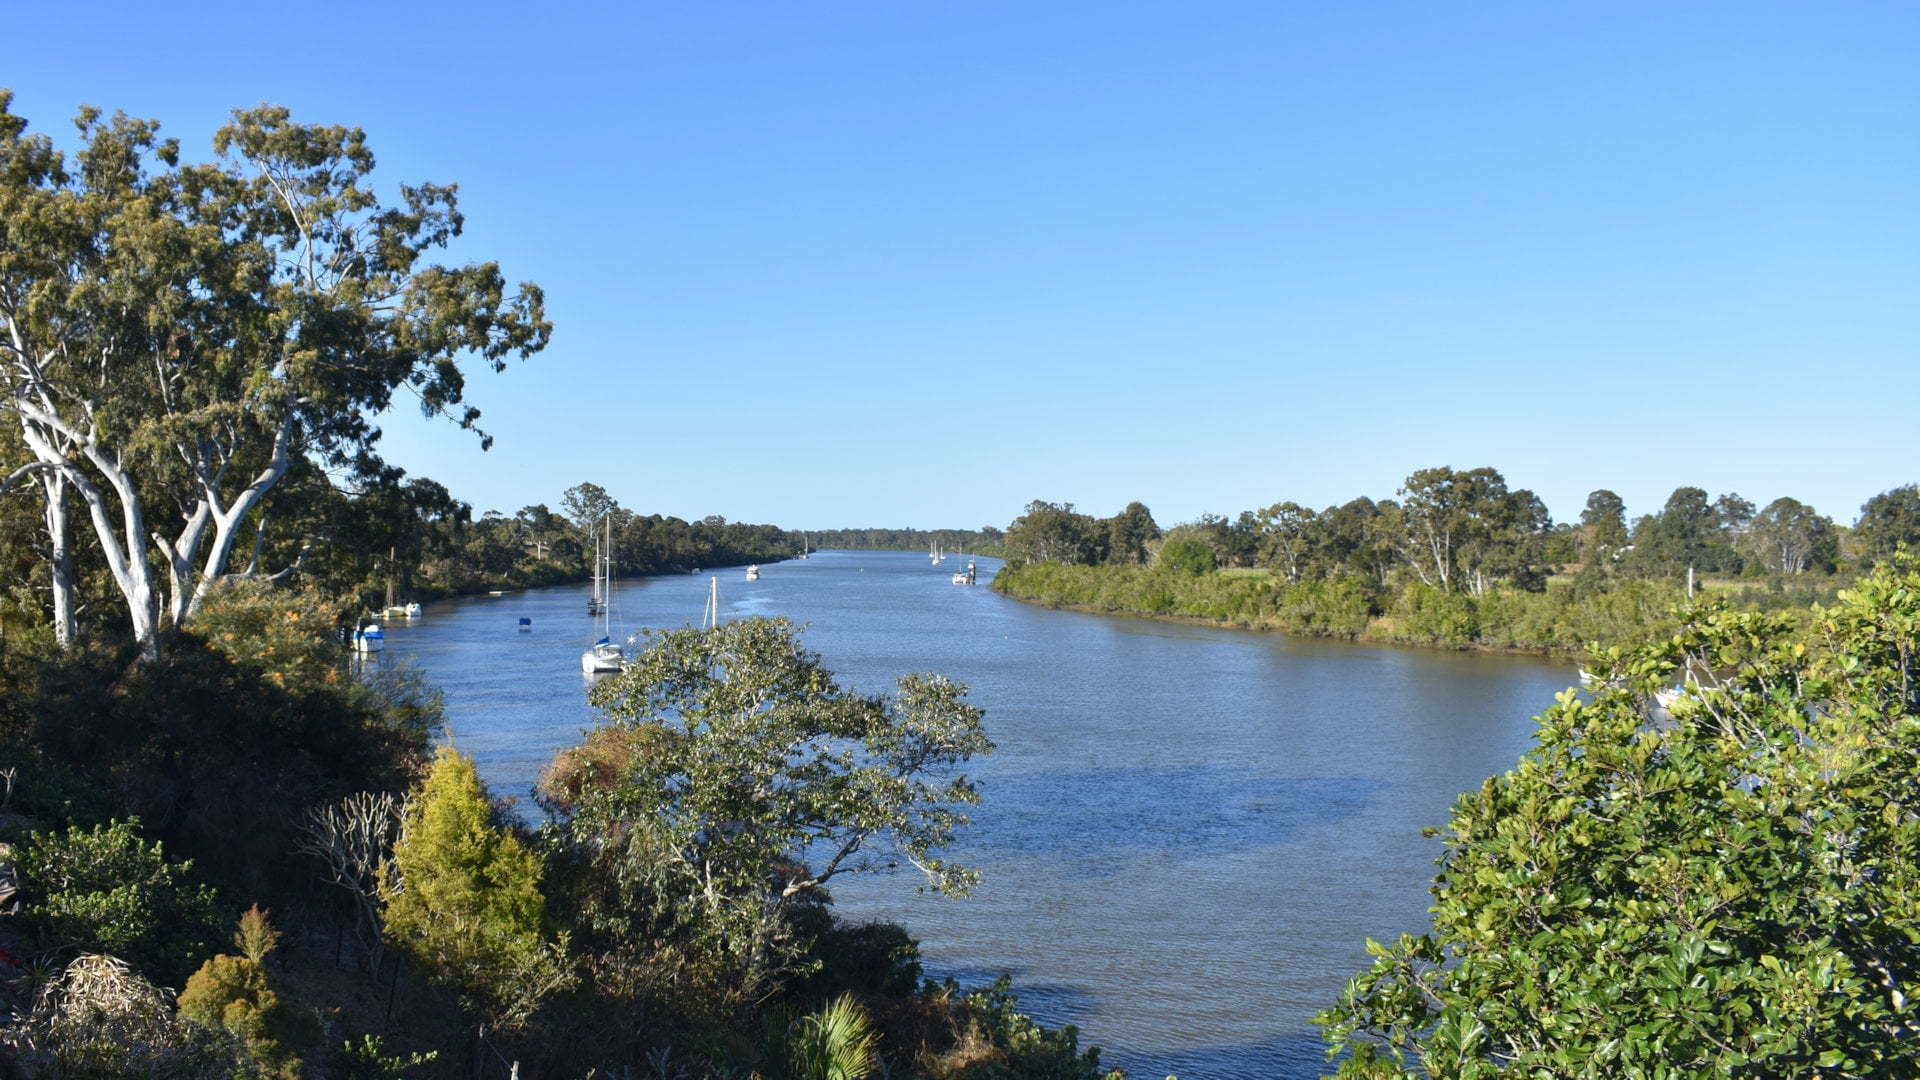 View up the Mary River from Point Lookout (Pt Lookout) in Maryborough